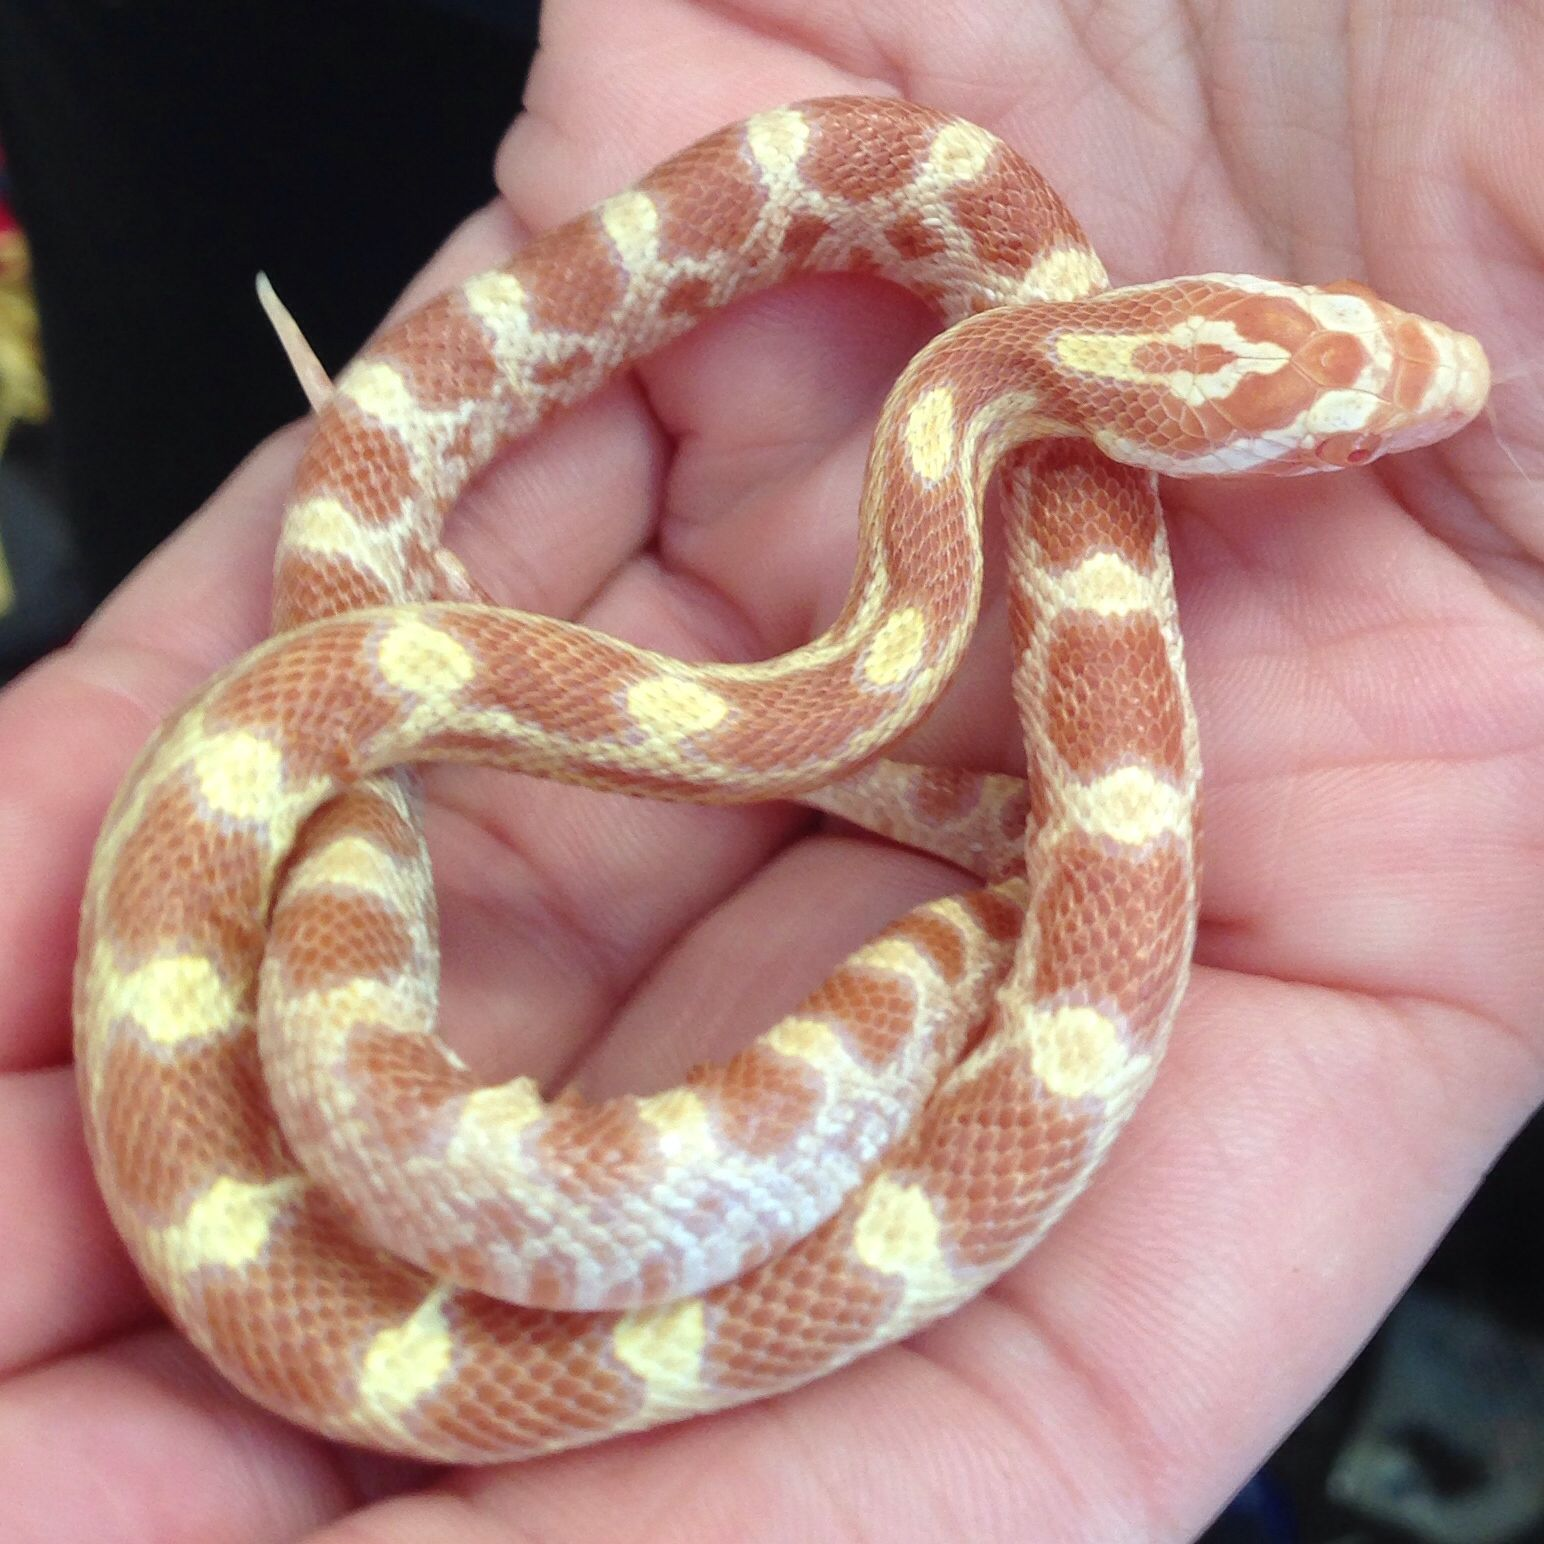 Butter Creamsicle Corn Snake. 5mths.